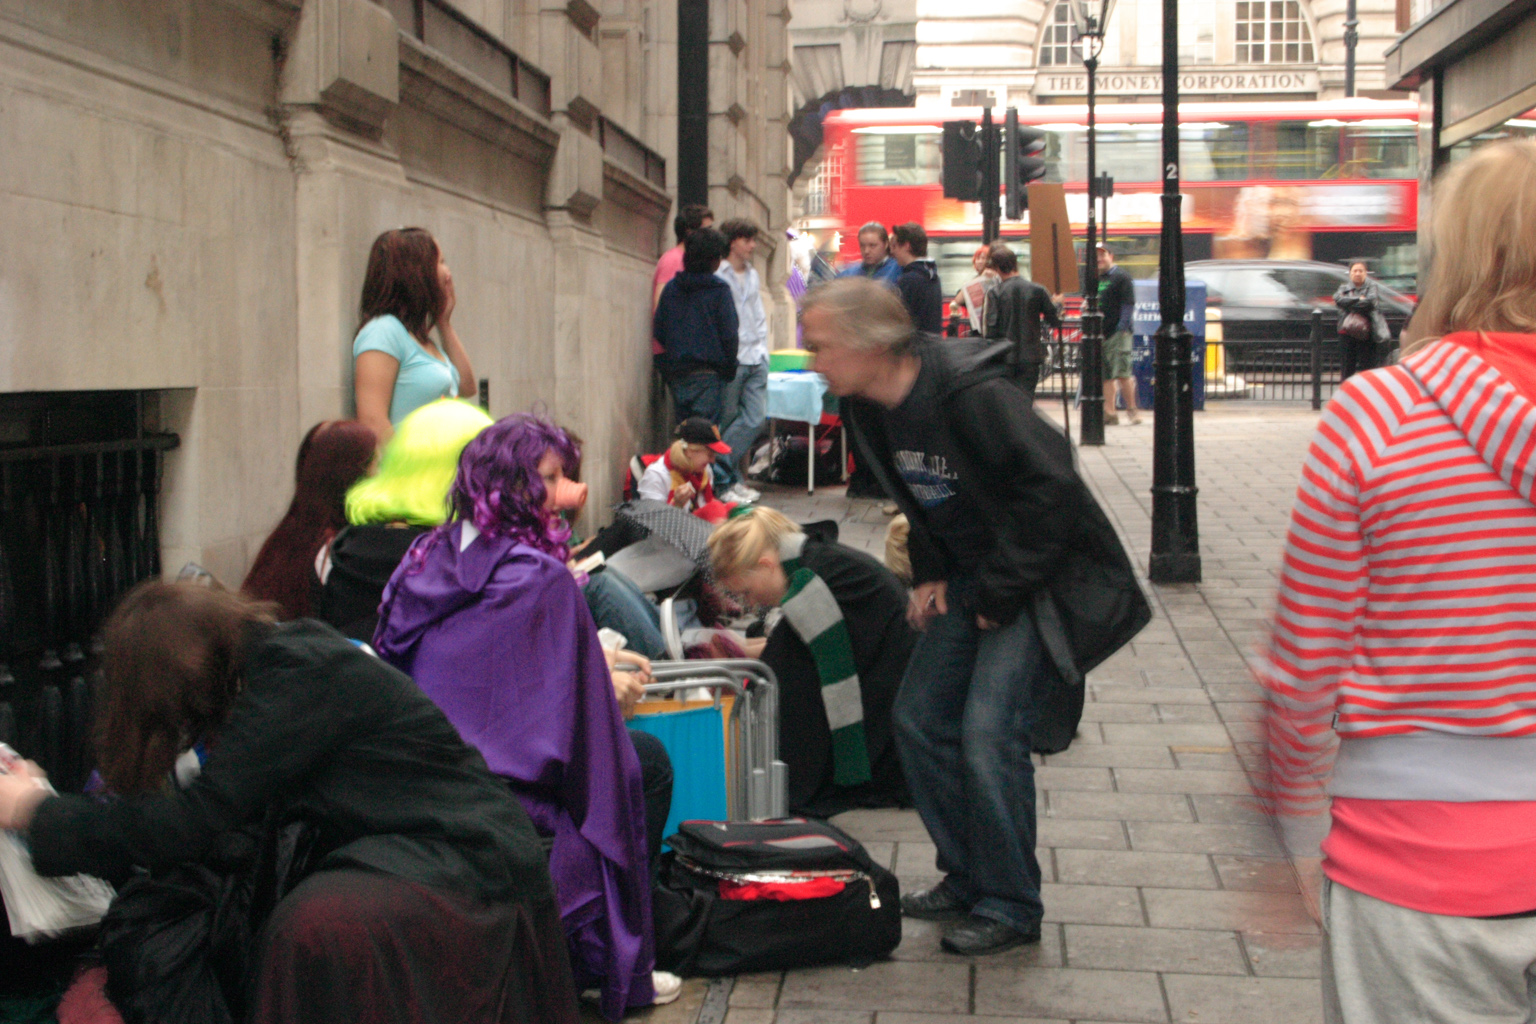 People queueing up for the Harry Potter book launch in London.